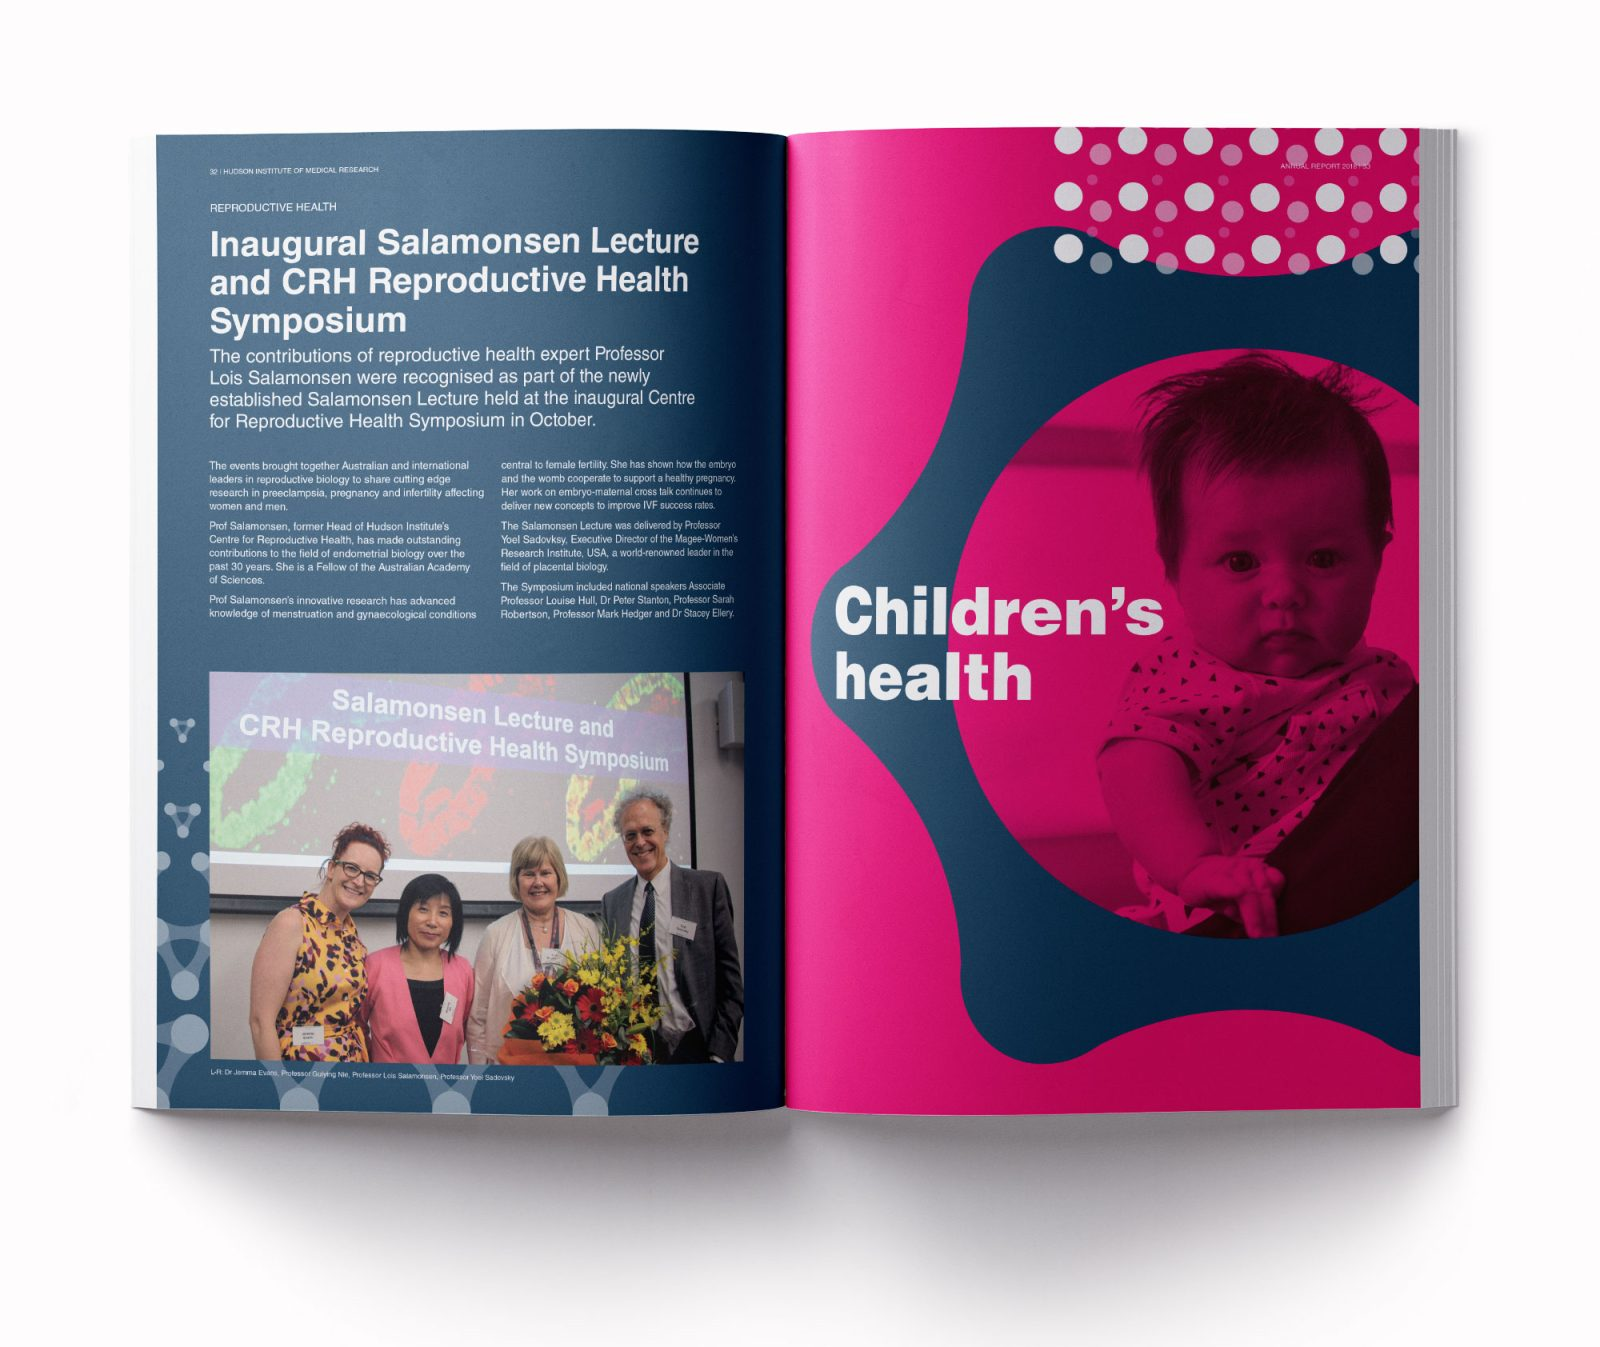 Hudson annual report 2018 Children's health cover spread